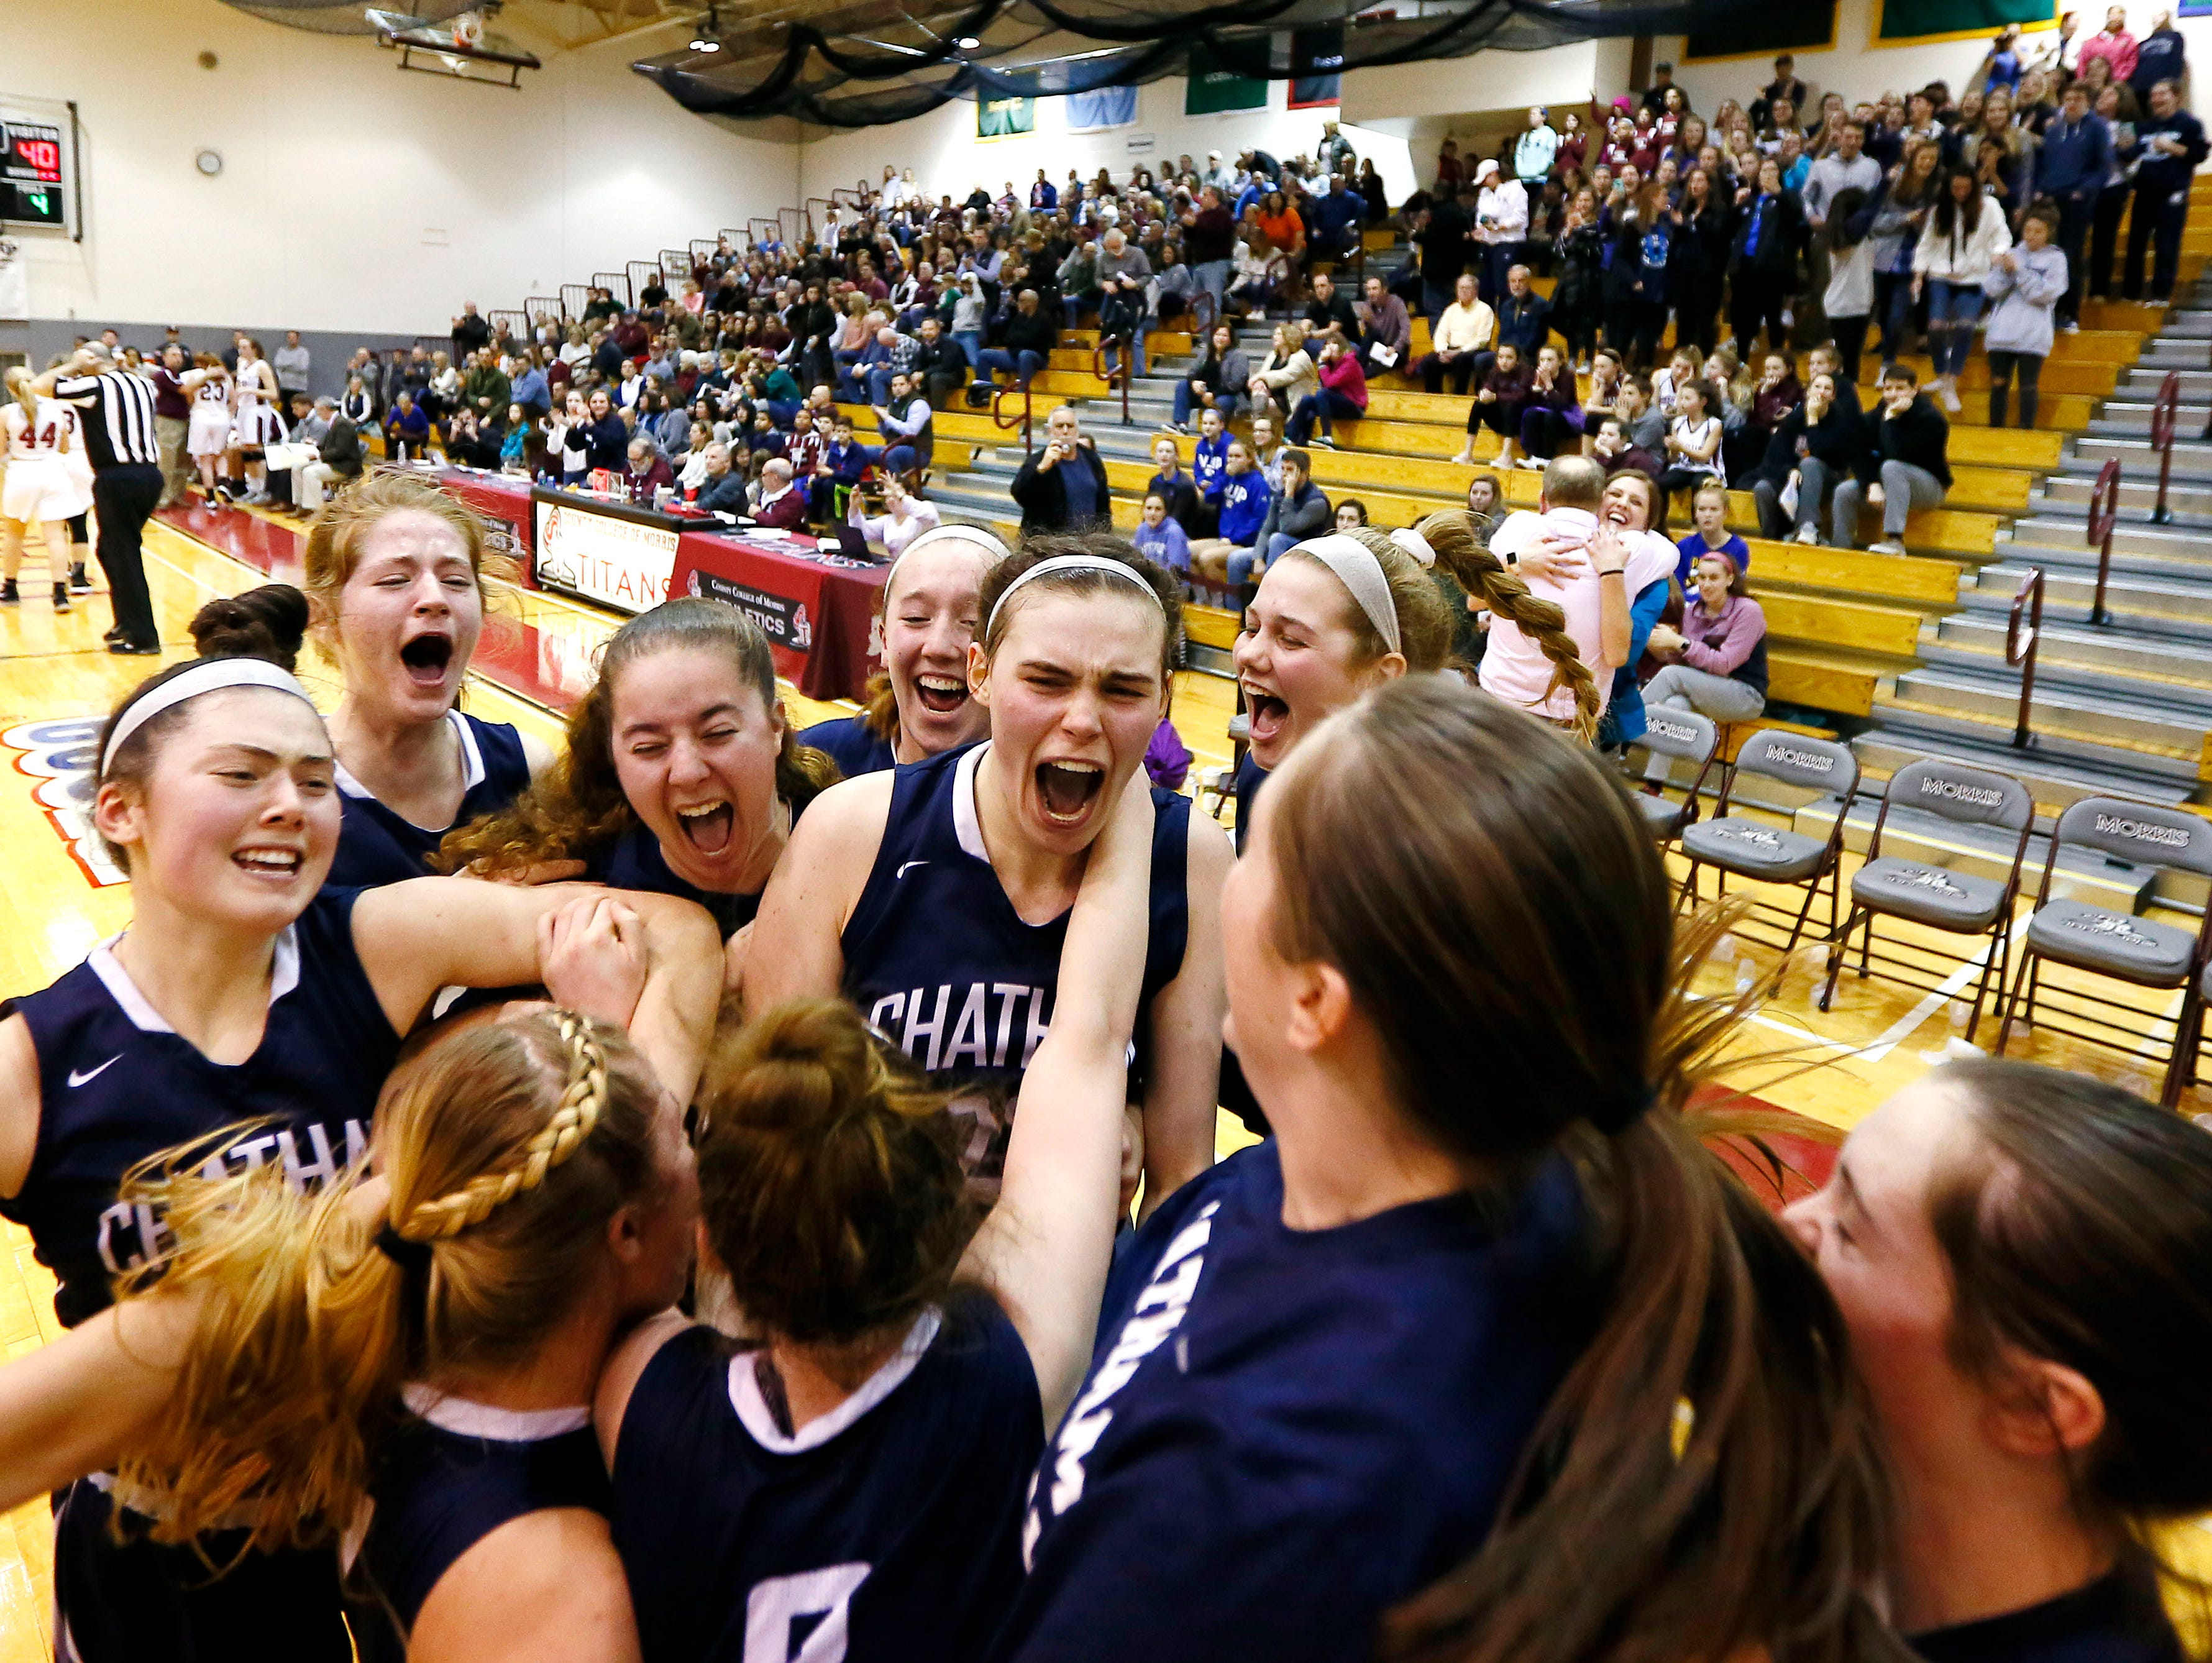 Chatham's Veronica Kelly, c,  celebrates with teammates after defeating Morristown during the 44th annual Morris County girls basketball tournament final at County College of Morris.  Chatham defeated Morristown, 40-31, to claim its first Morris County Tournament girls title. February 22, 2018. Randolph, NJ.